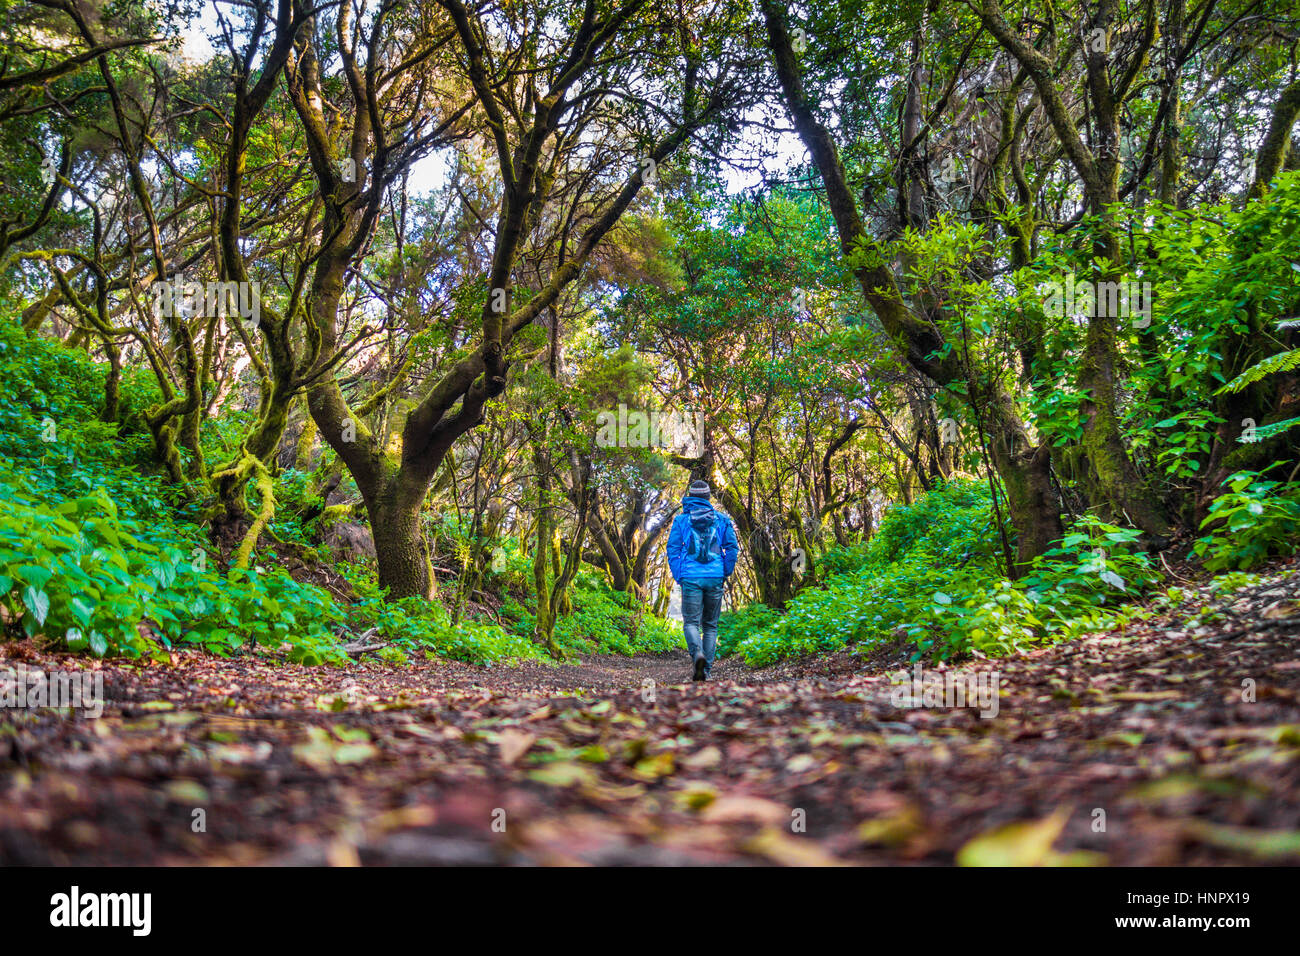 Low angle view of male tourist hiking through mystic forest of ancient trees on the beautiful island of El Hierro - Stock Image